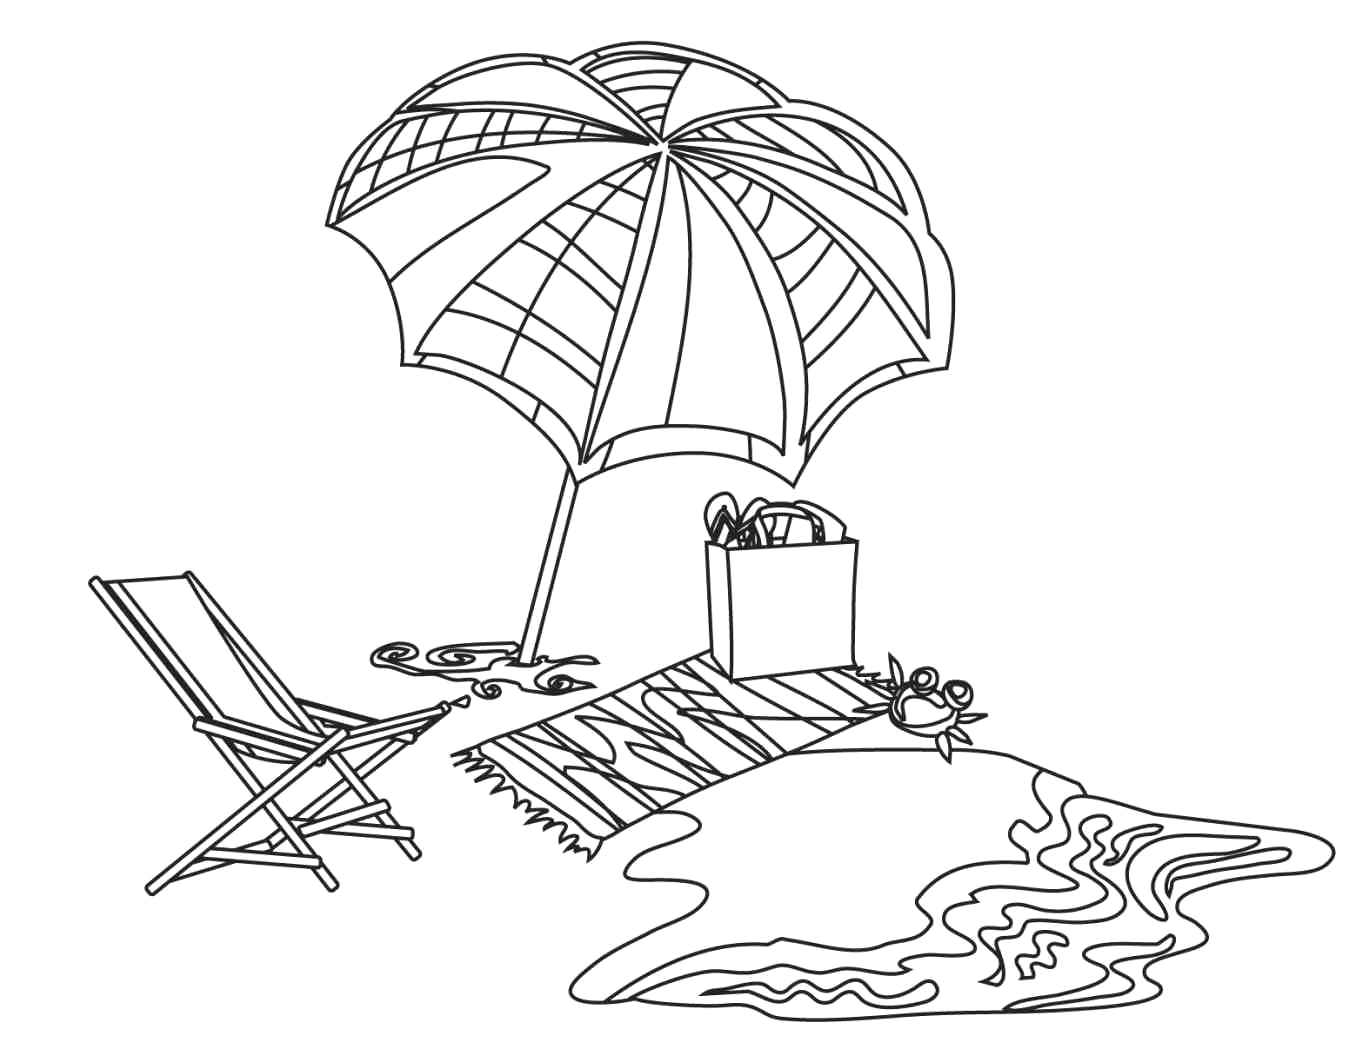 Coloring Pages Of the Beach to Print Free Printable Beach Coloring Pages for Kids